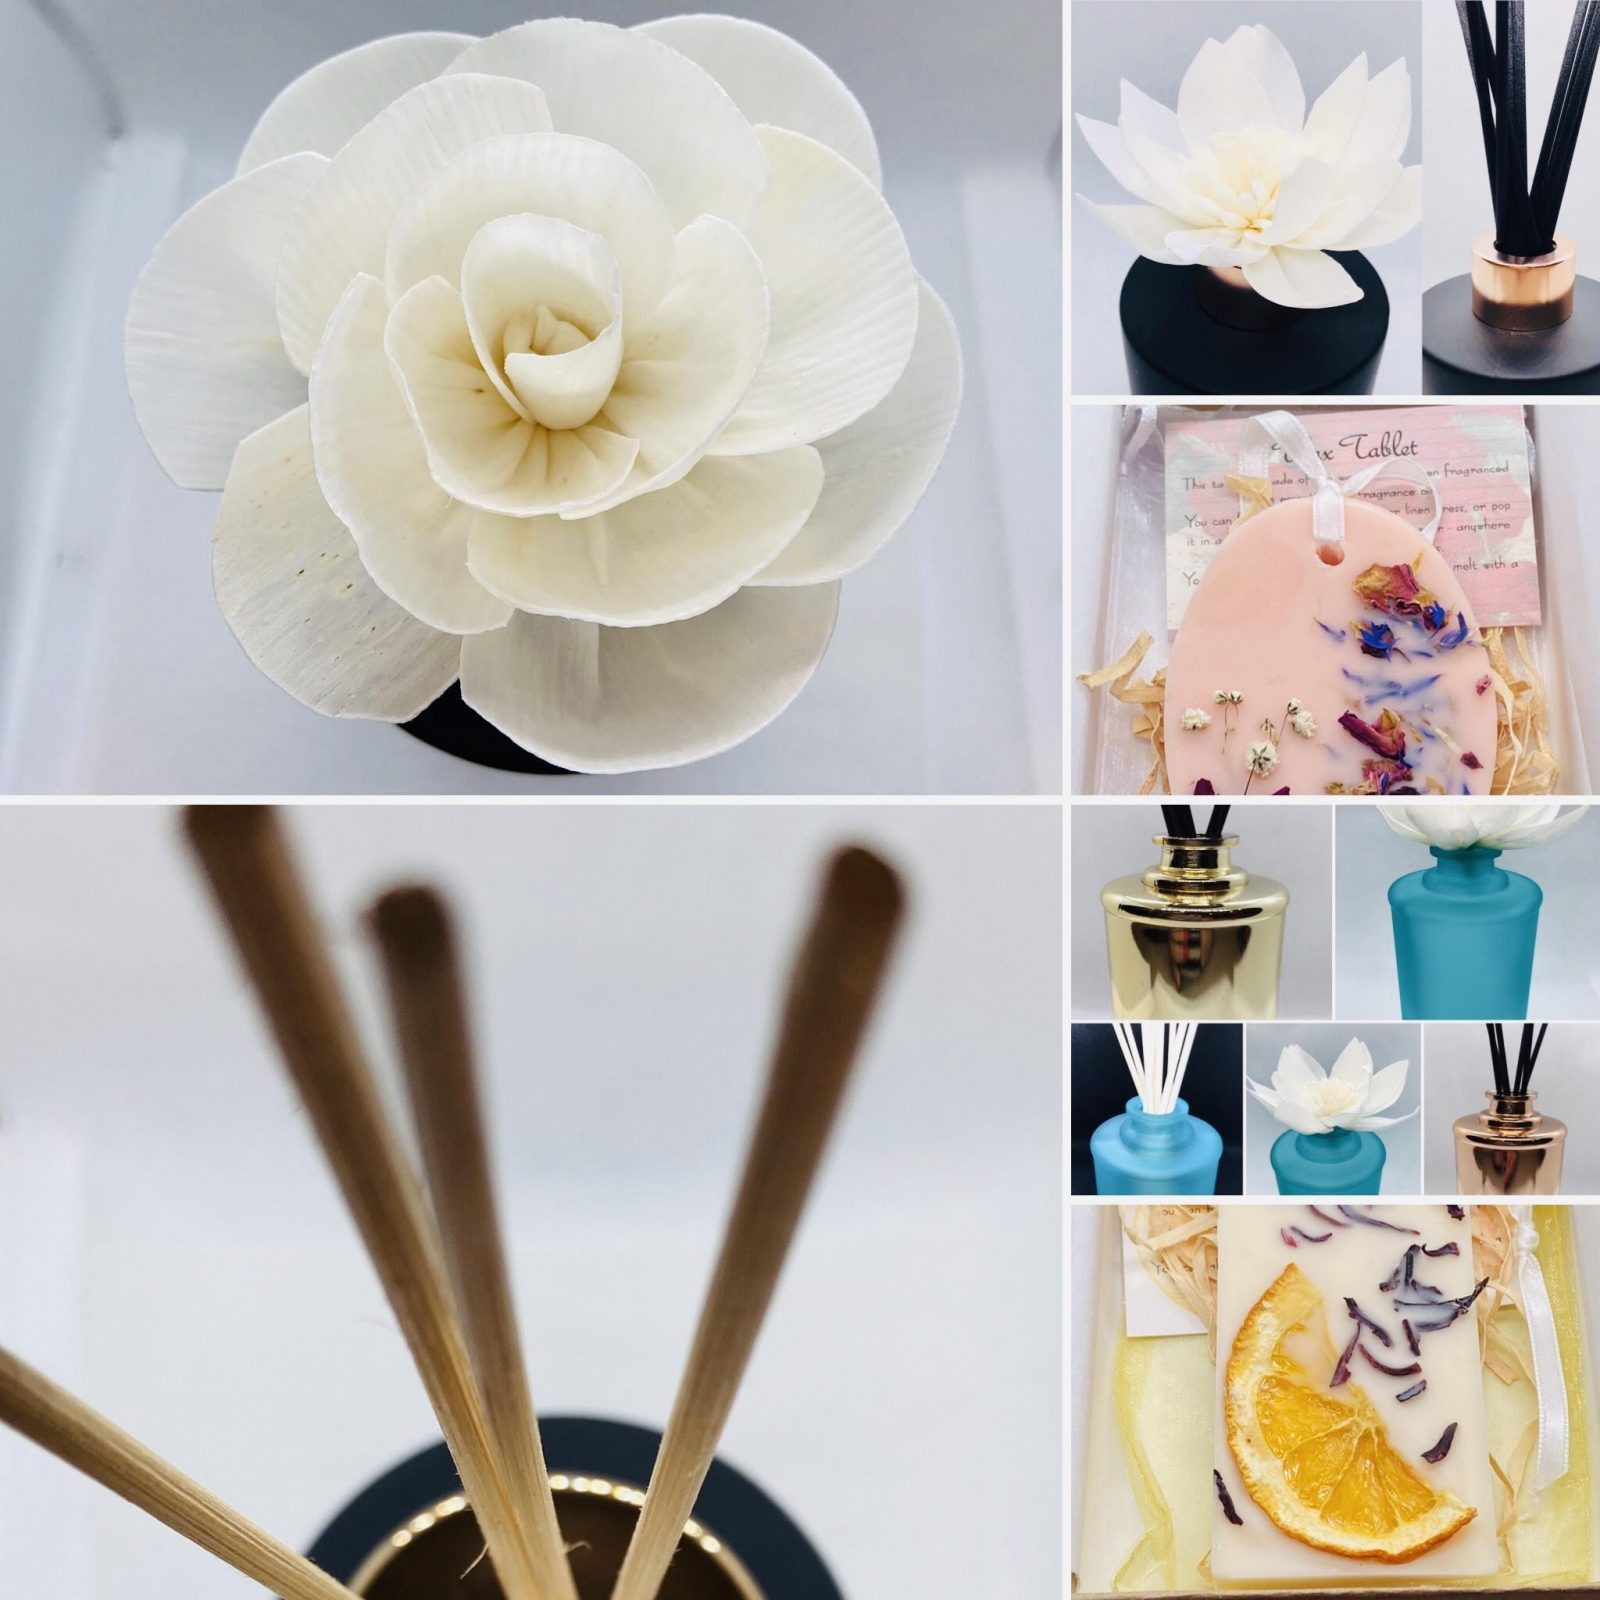 Collage of fragrant items